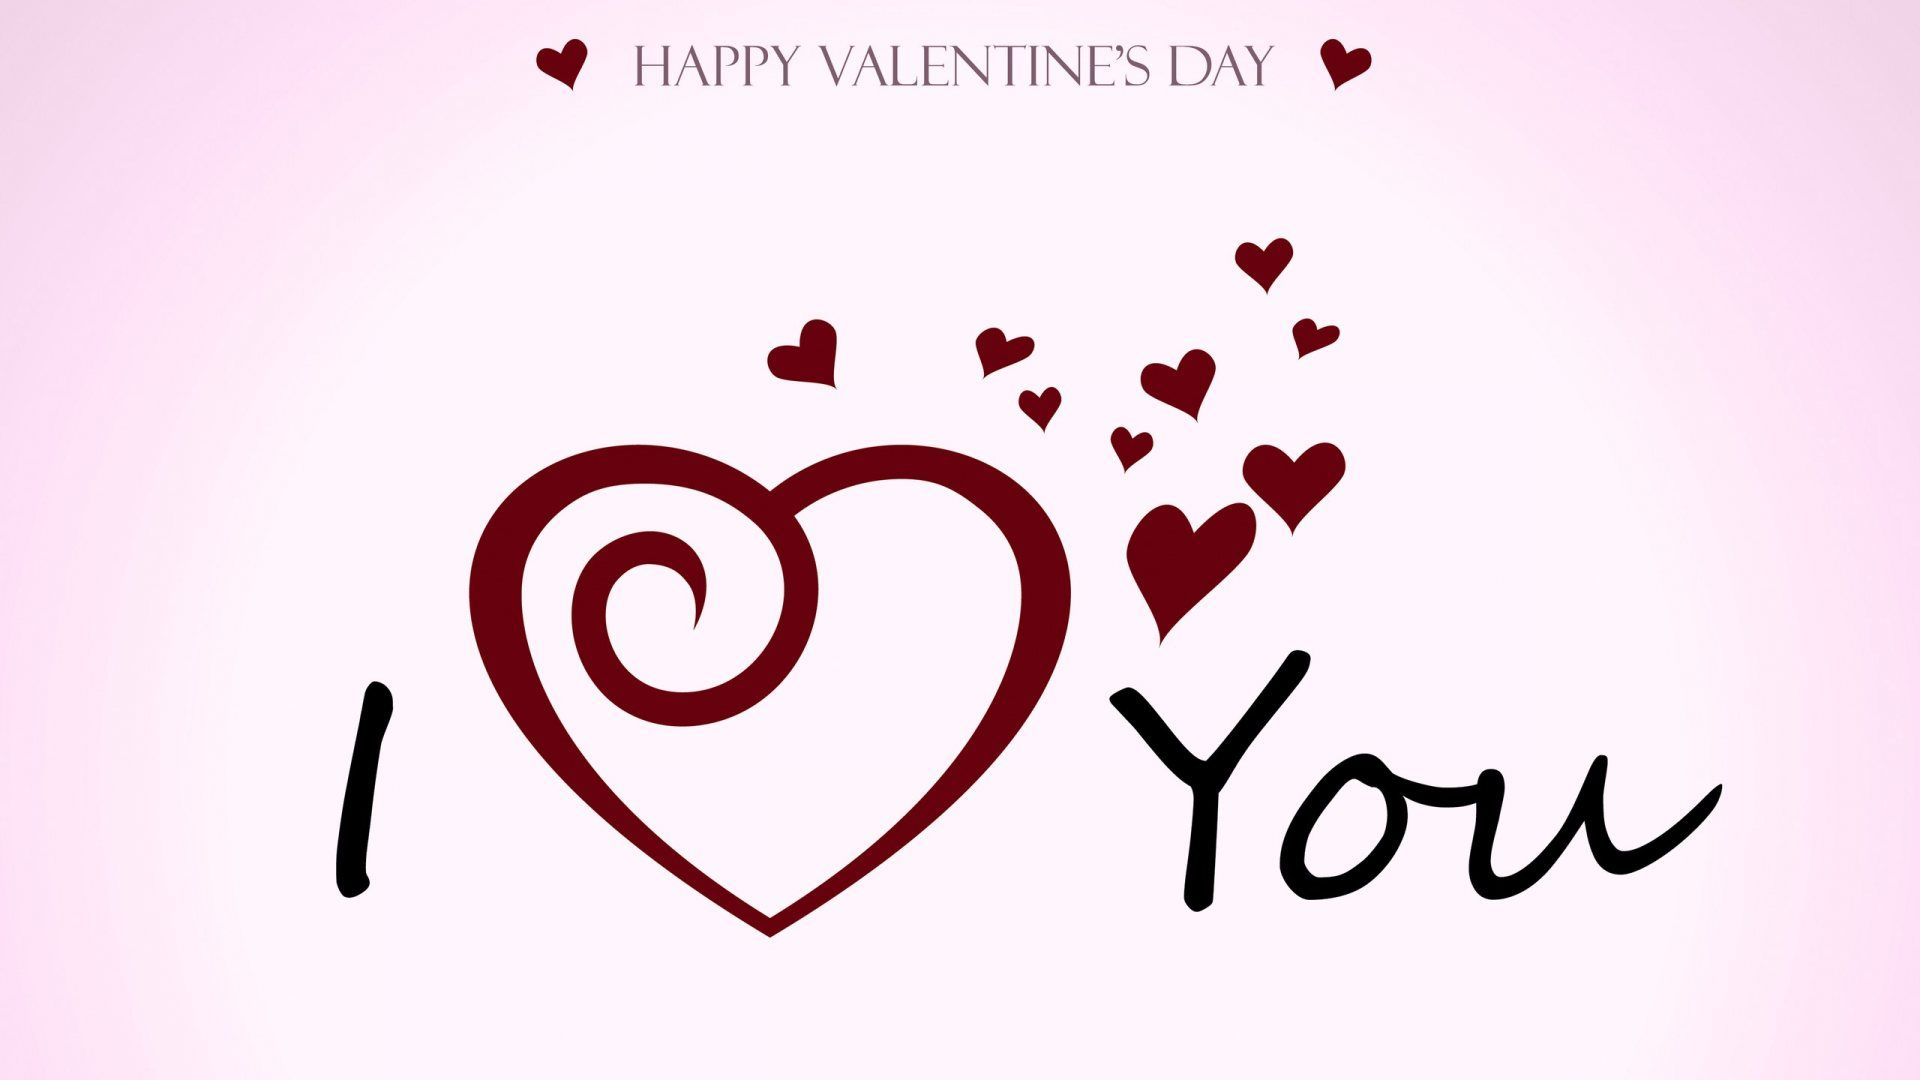 Pin by Julia Akter on Valentines Week Happy valentines day 1920x1080